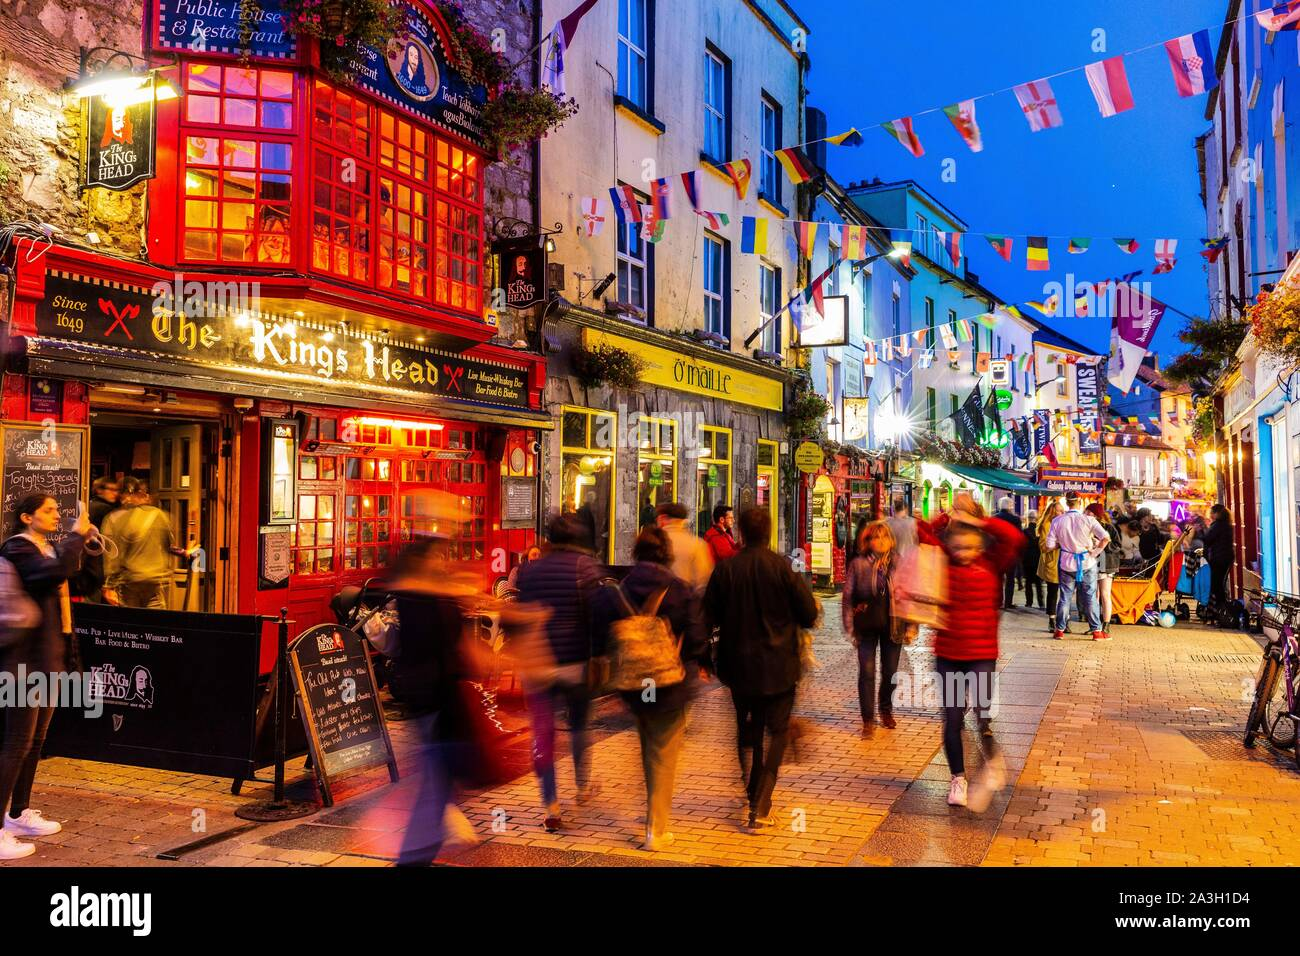 5 BEST First Date Ideas & Spots In Galway